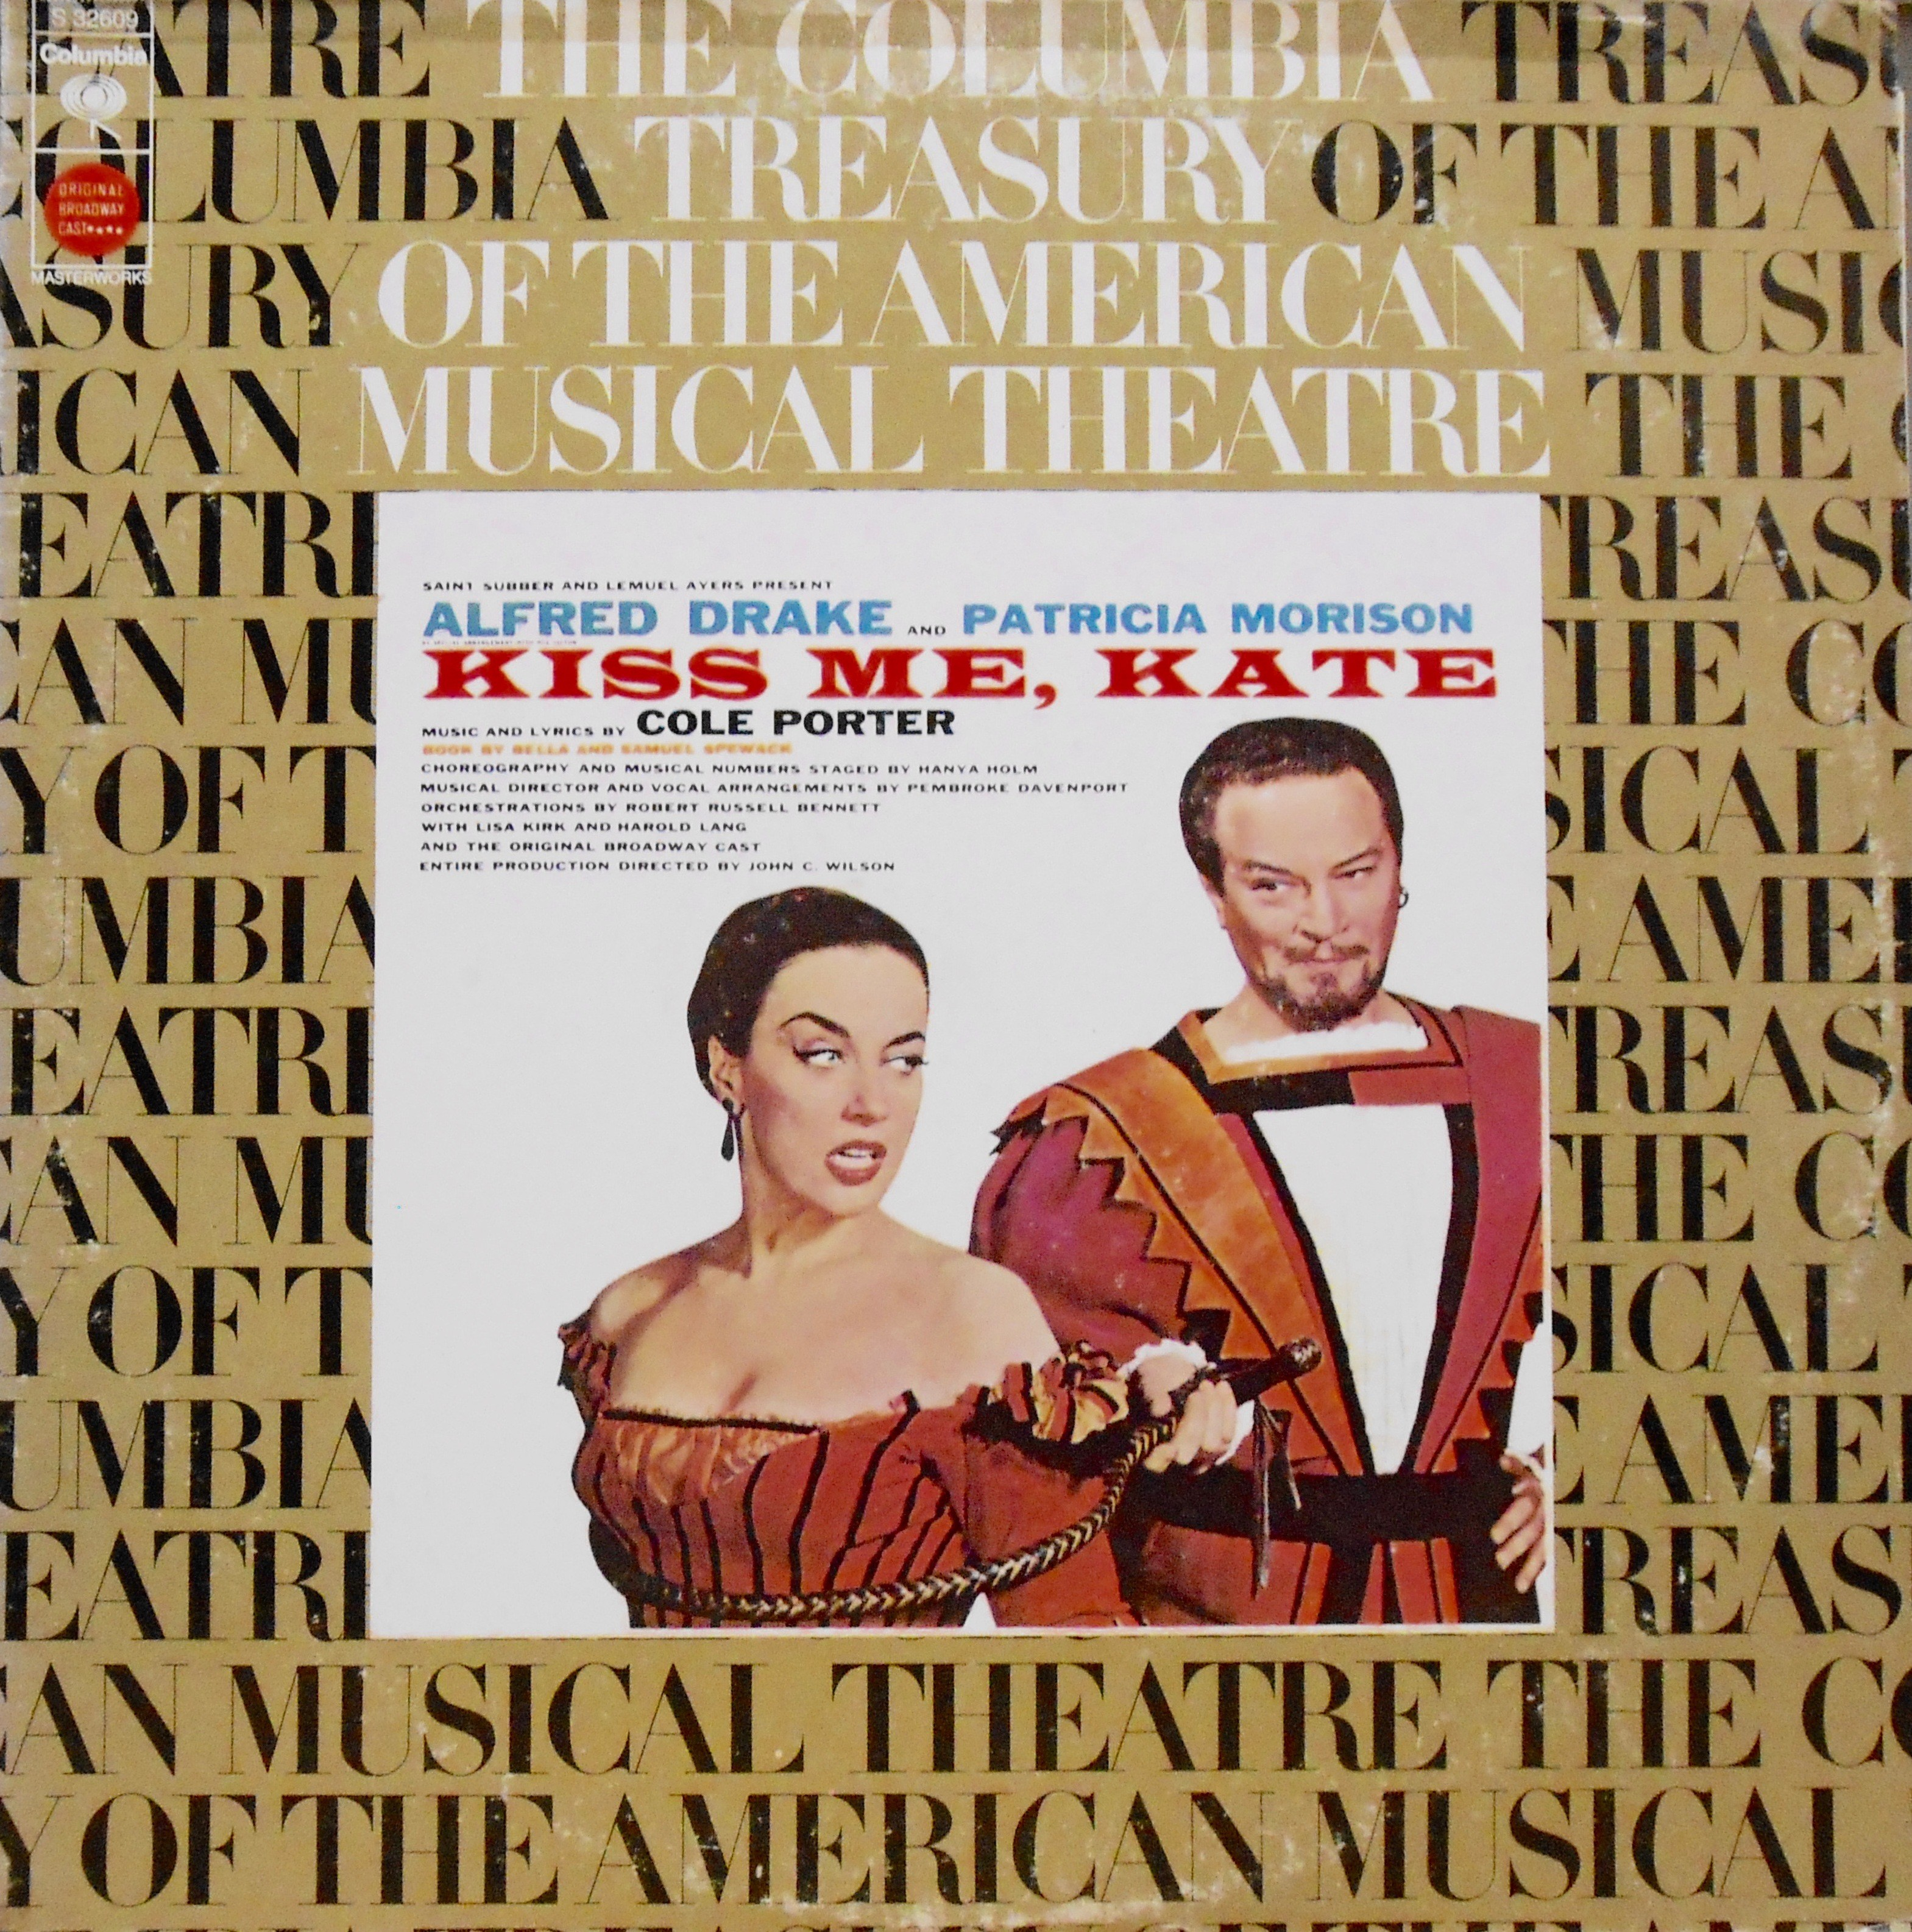 an analysis of the musical kiss me kate by cole porter Su drama caps off season with cole porter's hit musical 'kiss me kate'april 12, 2005monica alfonsomjalfons@syredu the syracuse university drama department concludes the 2004-05 season with.